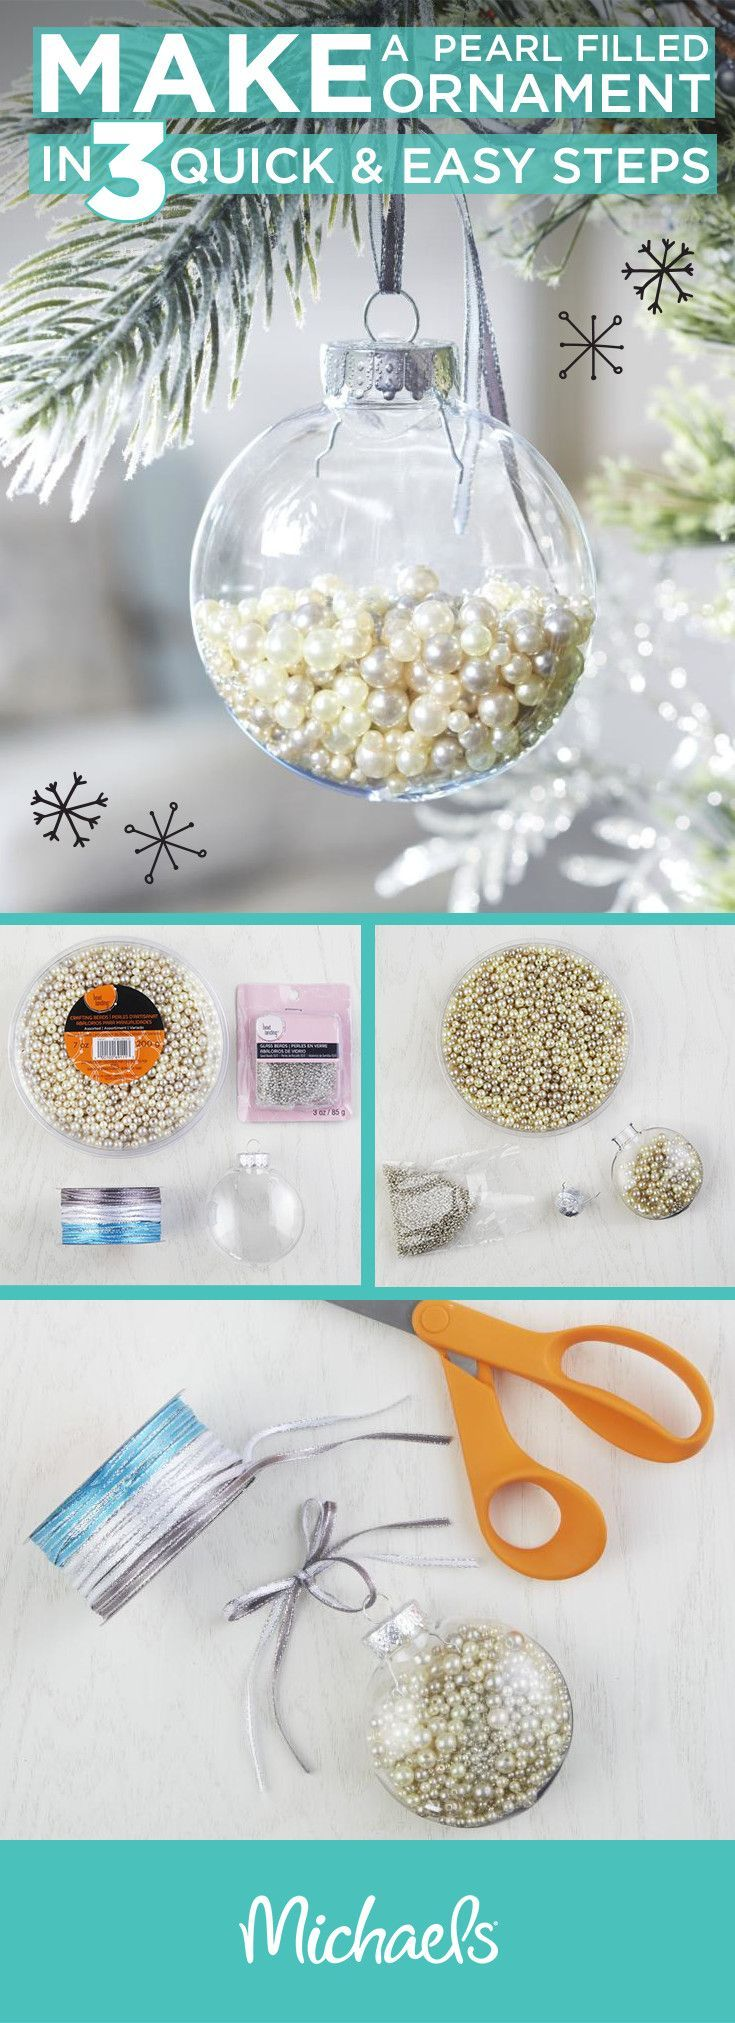 Make a pearl filled ornament in 3 quick and easy steps! First, gather your supplies. Open your clear ornament and fill it with loose pearls. Replace the top of the ornament and tie on ribbon to match your tree. For more holiday ideas and inspiration, visit http://Michaels.com